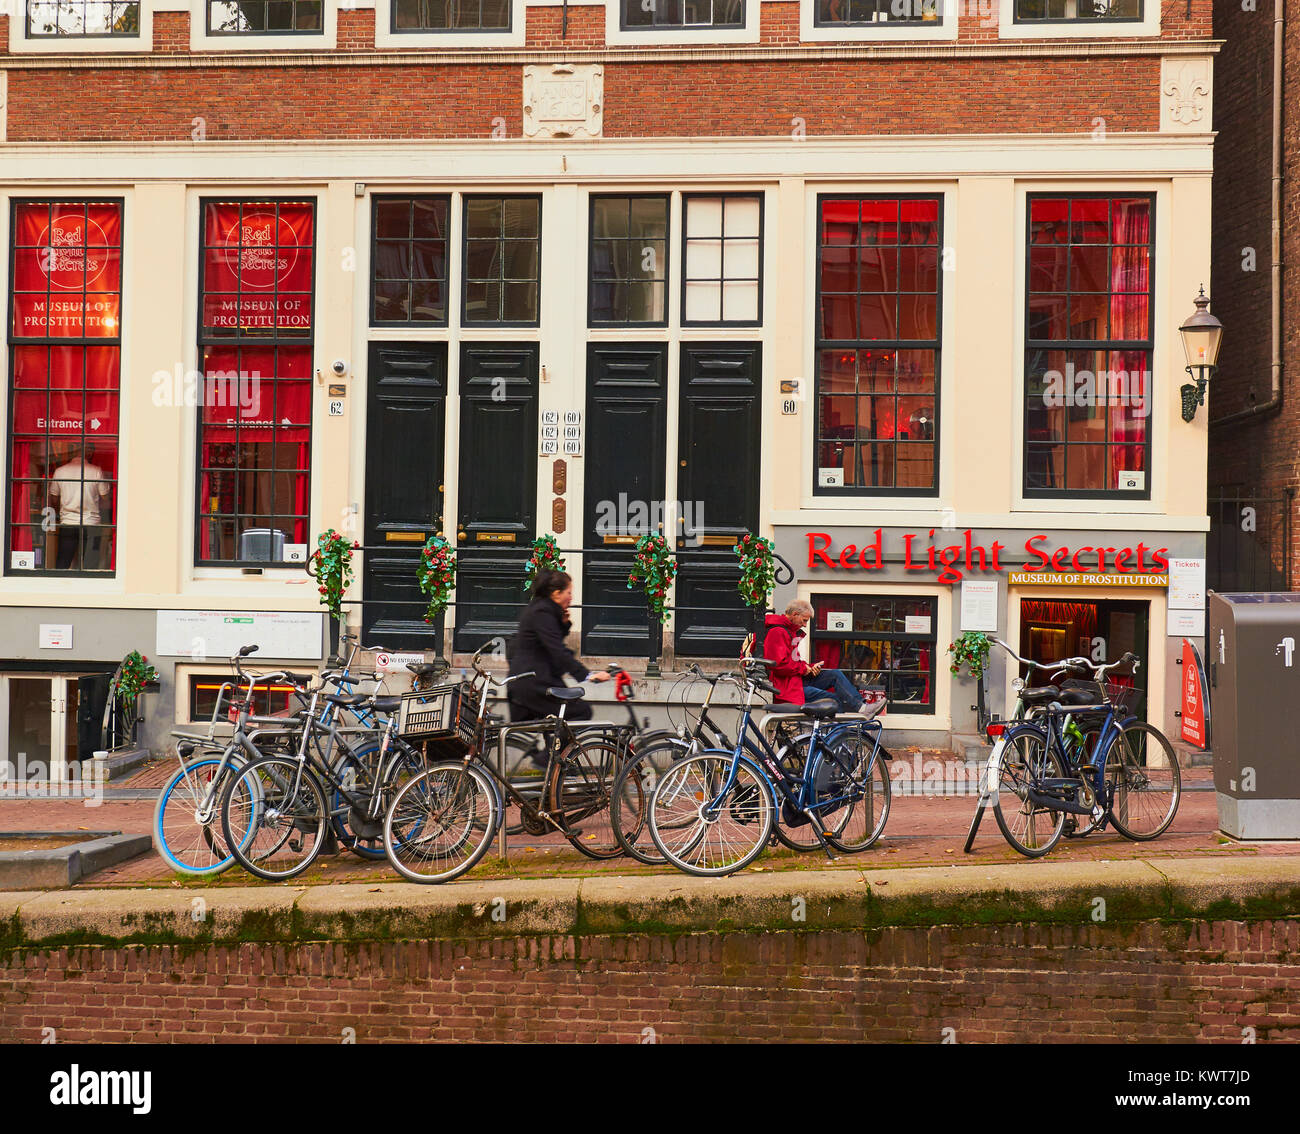 Museum of Prostitution (Red Light Secrets), red light district (De Wallen), Amsterdam, Netherlands - Stock Image